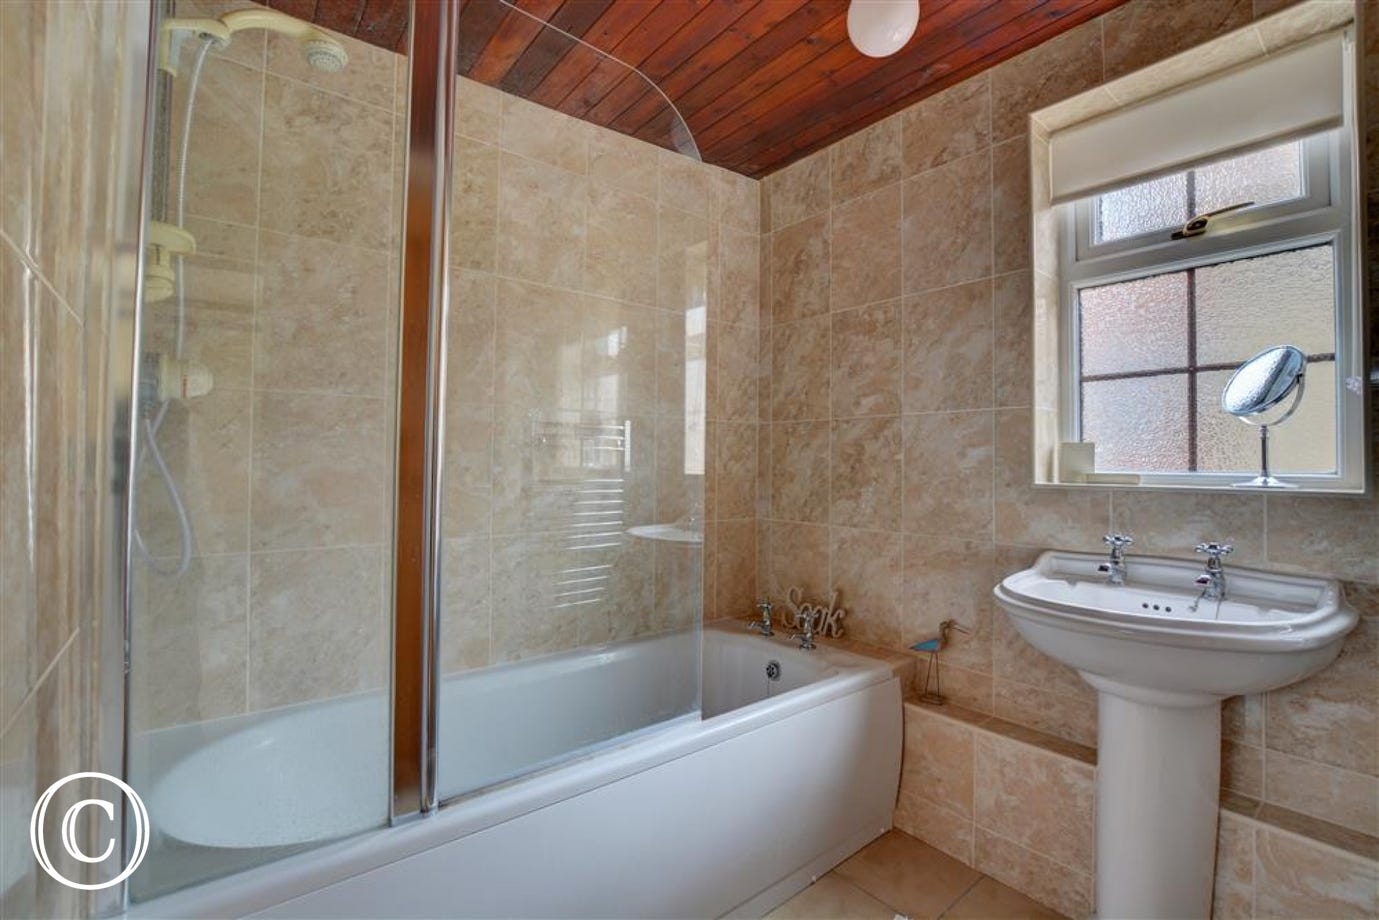 Fully tiled bathroom with bath and over bath shower